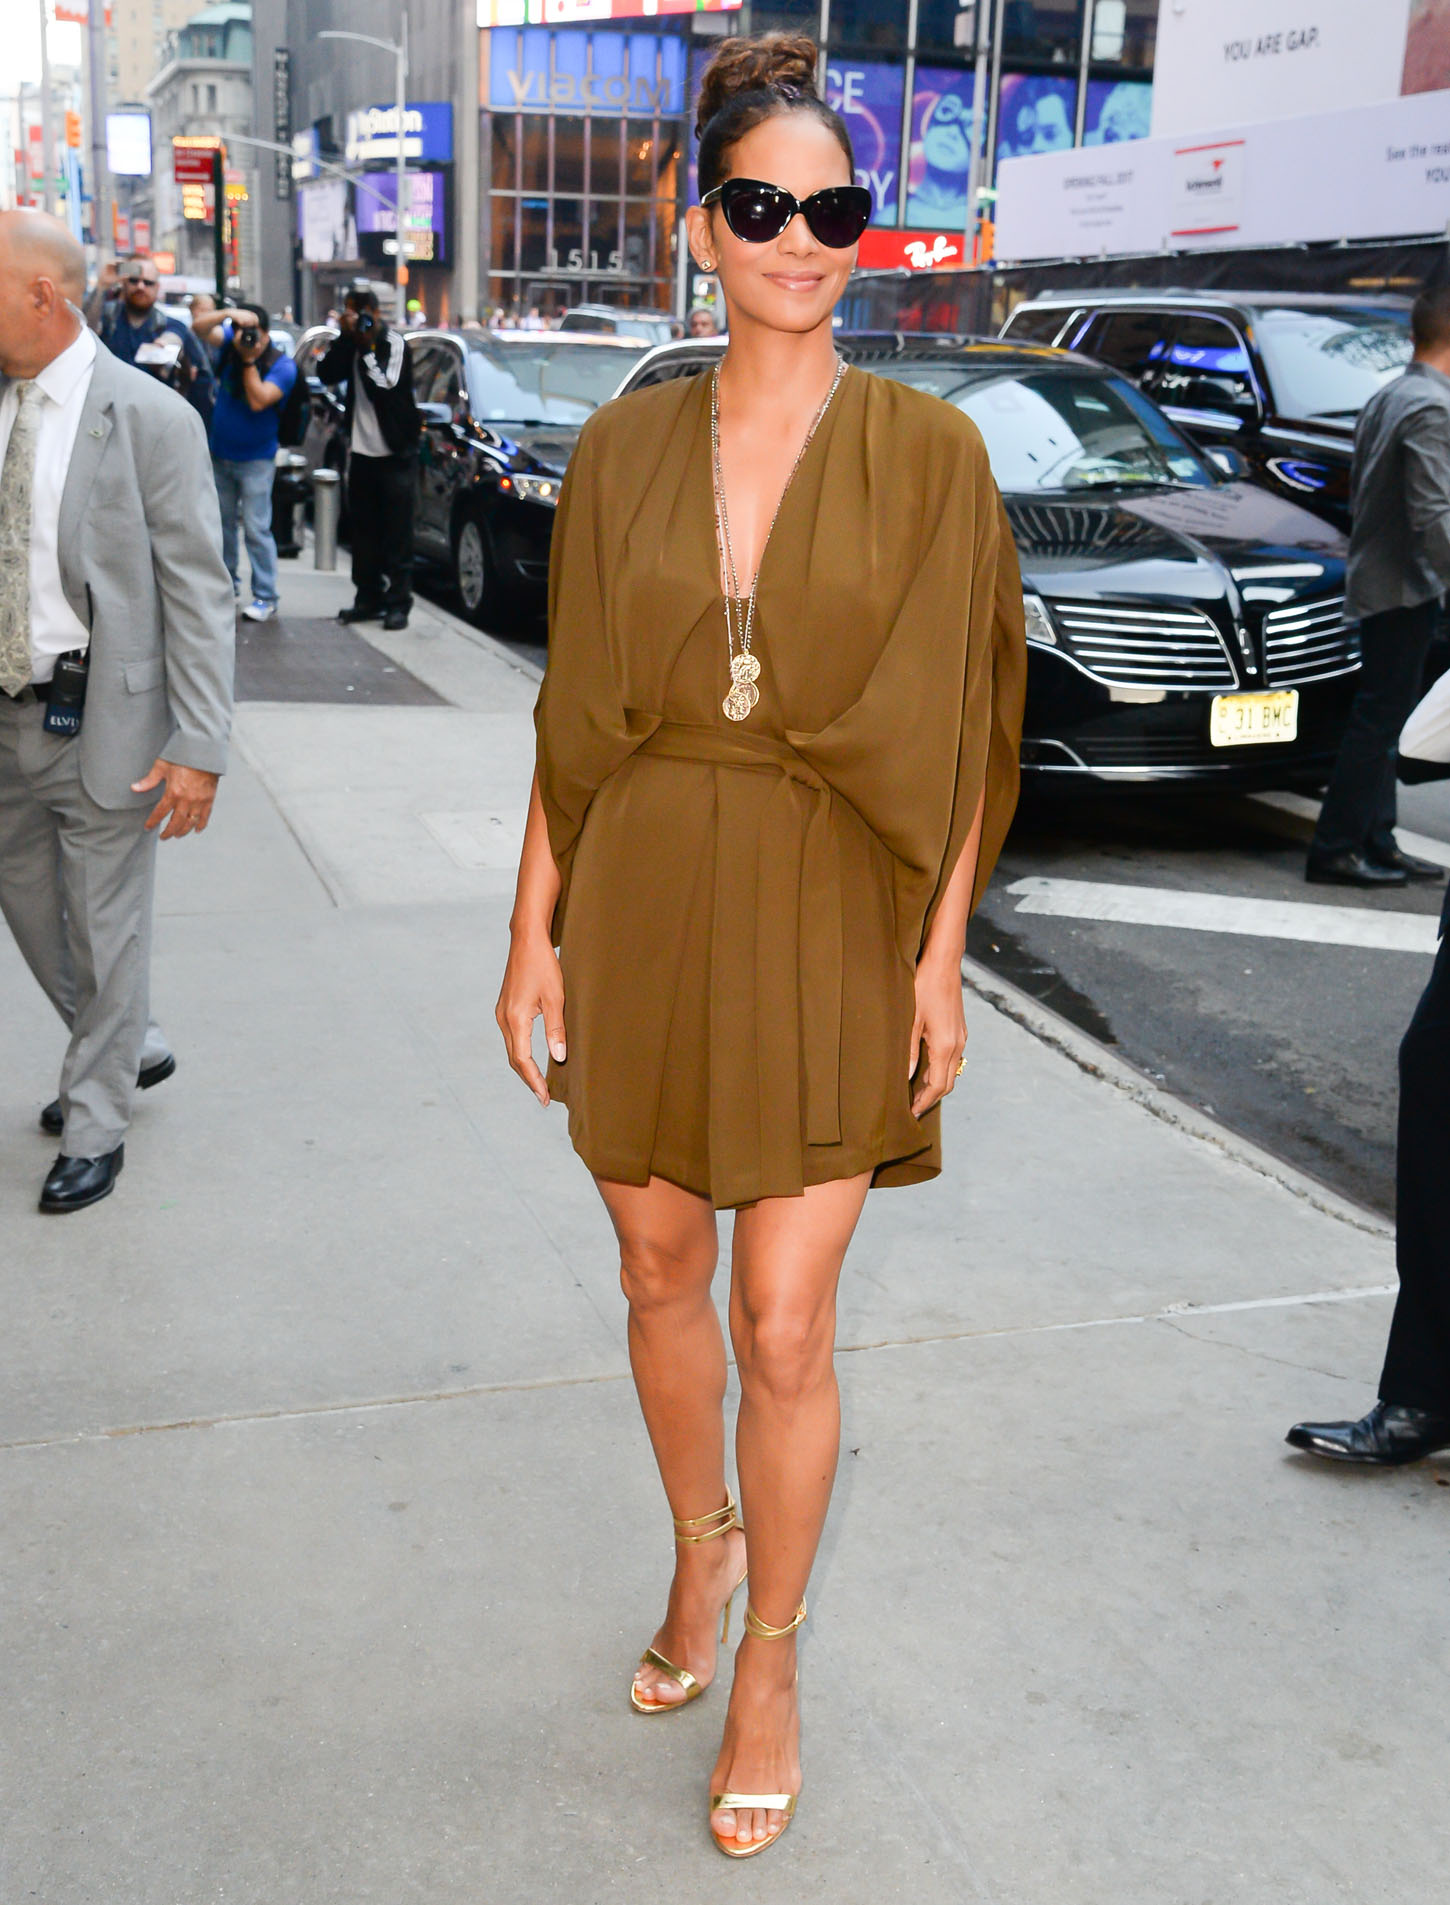 Halle Berry is spotted outside the Good Morning America Studios in New York City, NY, USA. Actress was wearing a gold dress. <P> Pictured: Halle Berry <B>Ref: SPL1549822  030817  </B><BR/> Picture by: H&H JDHIMAGEZ.COM / Splash News<BR/> </P><P> <B>Splash News and Pictures</B><BR/> Los Angeles:	310-821-2666<BR/> New York:	212-619-2666<BR/> London:	870-934-2666<BR/> <span id=